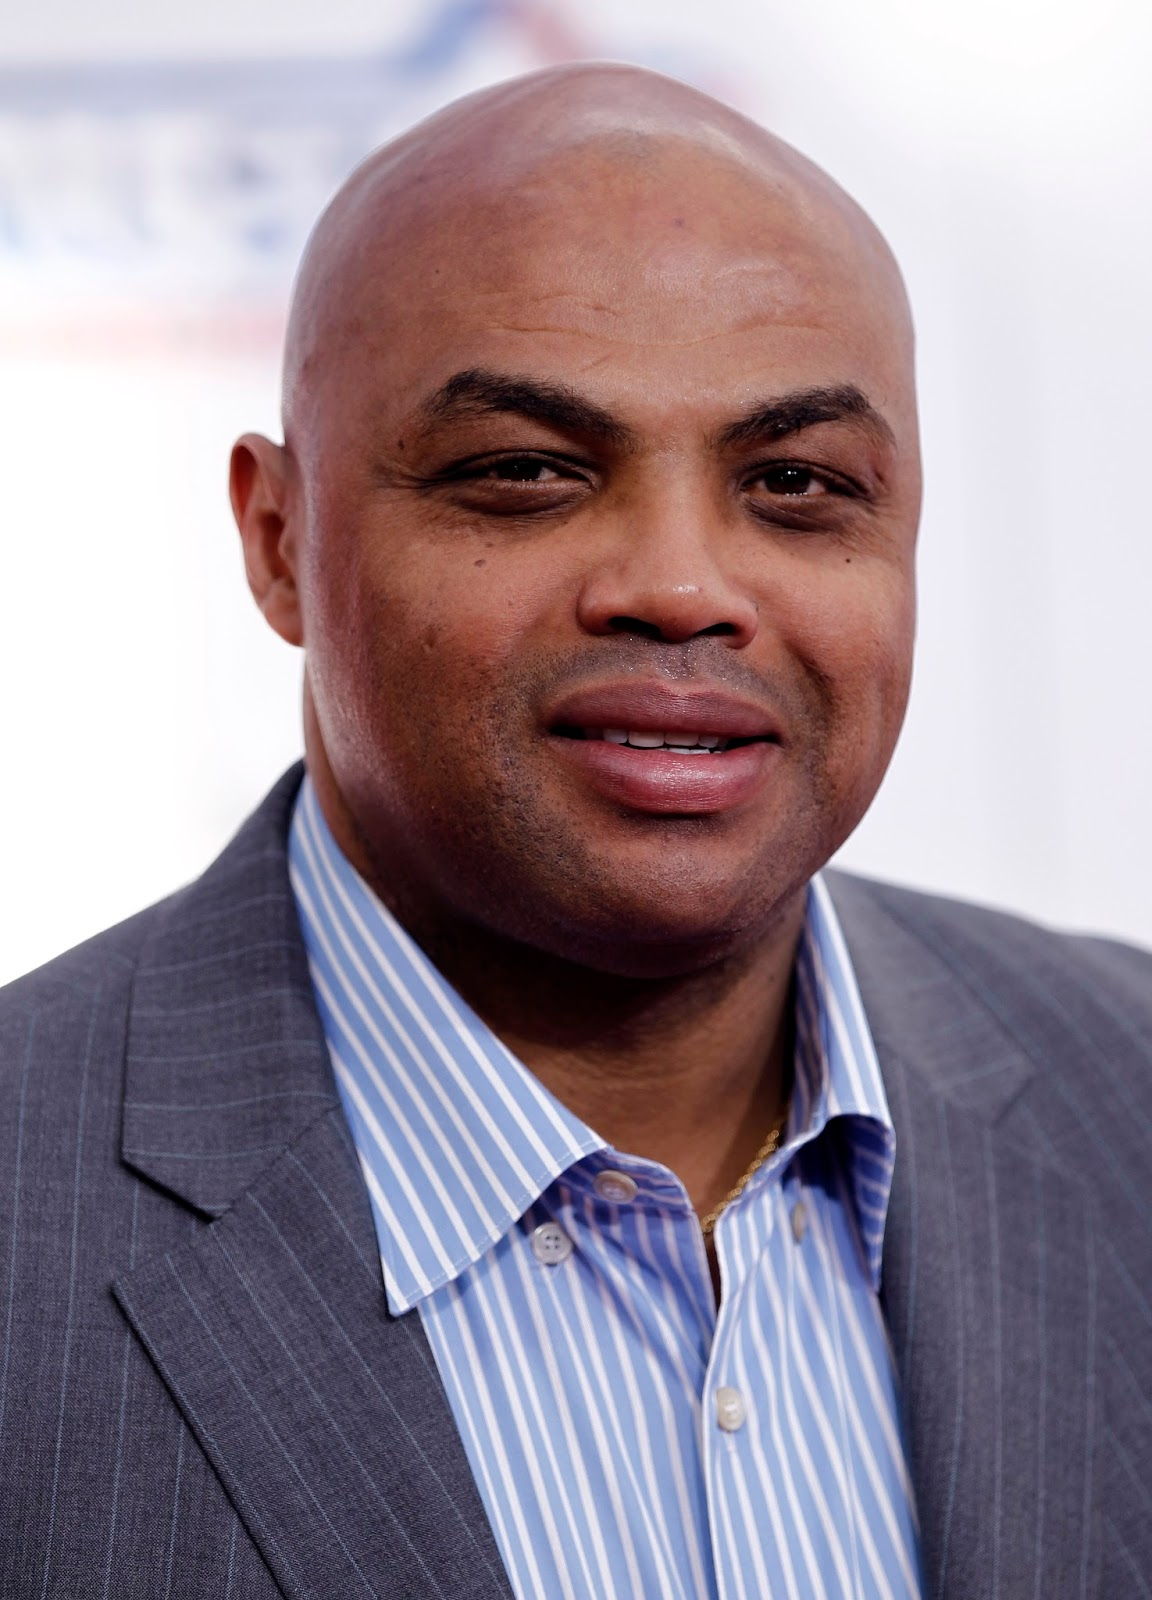 charles barkley - photo #14